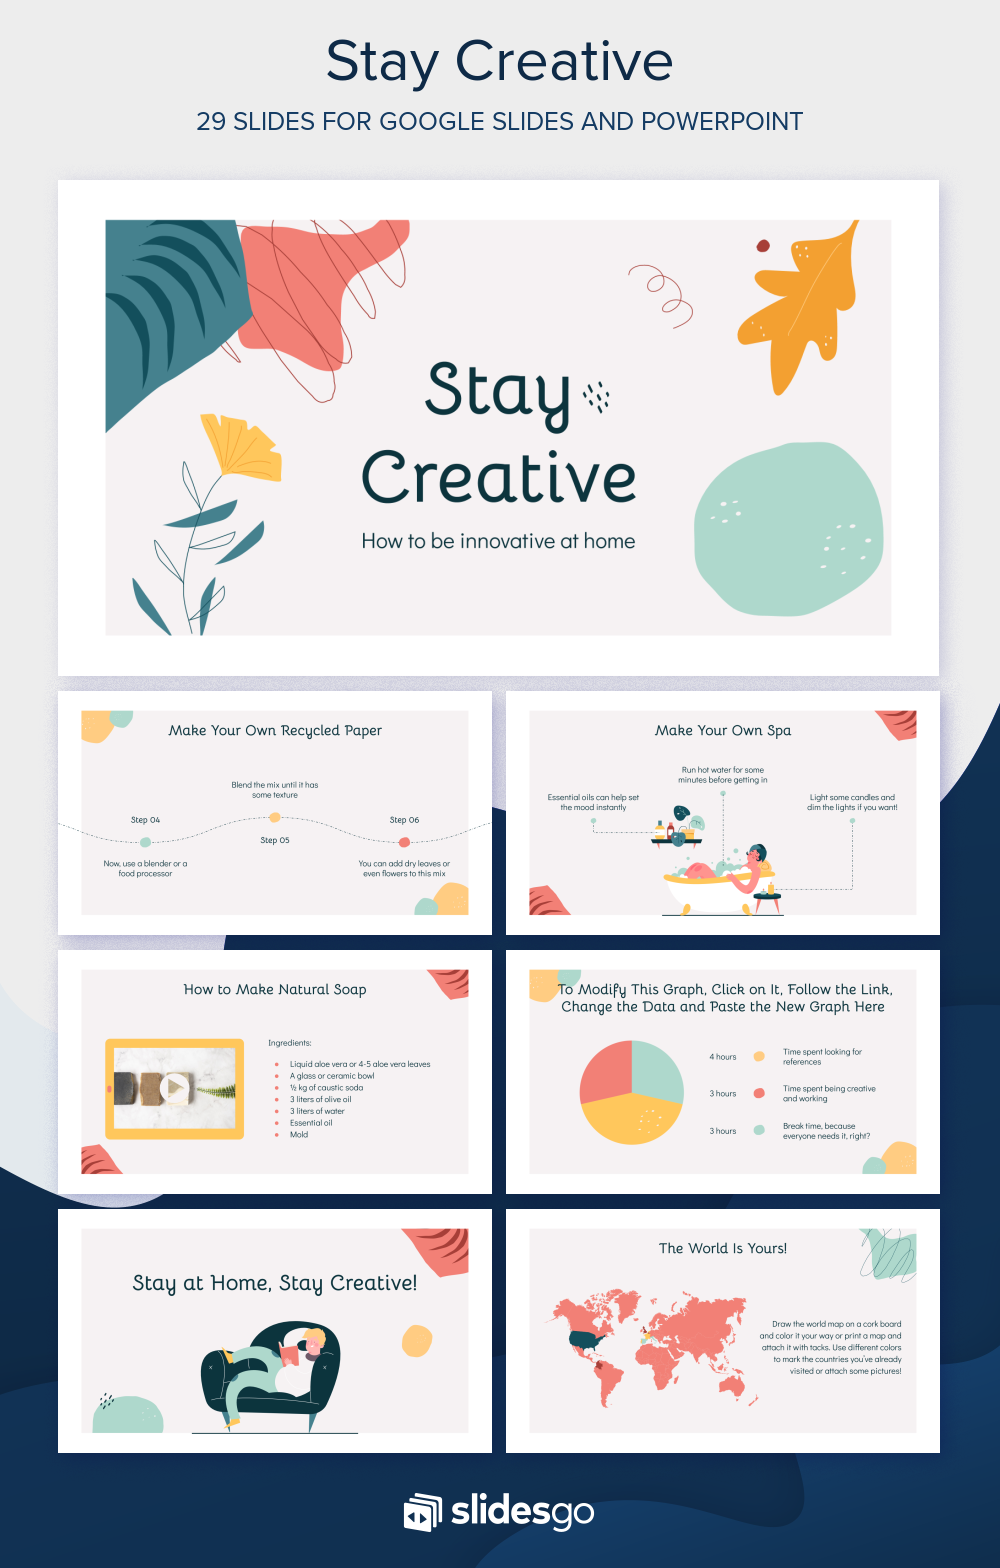 Customize Our Free Google Slides Theme And Powerpoint Template To Powerpoint Background Design Creative Powerpoint Presentations Free Powerpoint Presentations